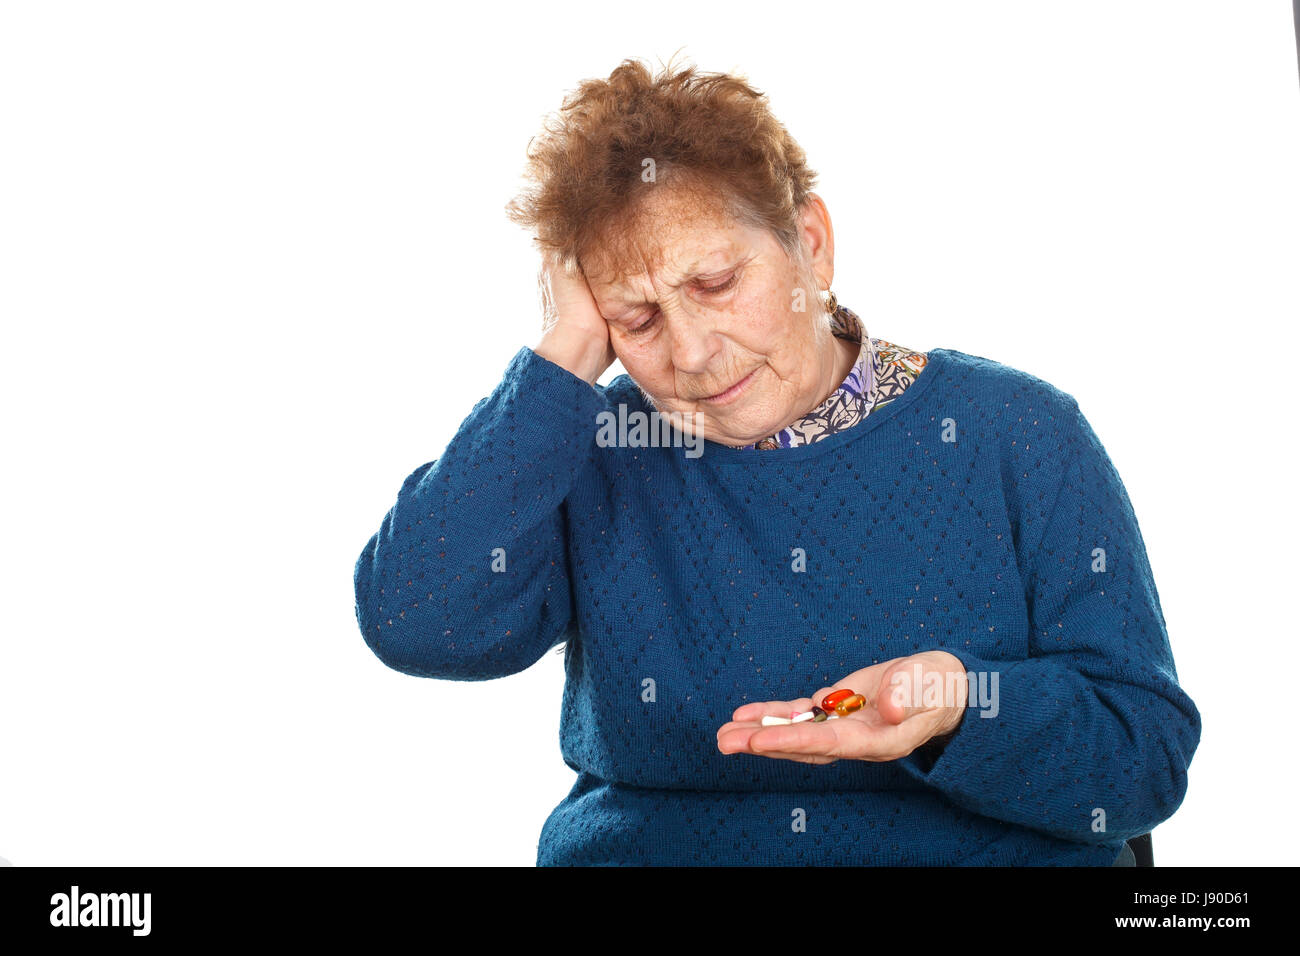 Picture of a senior woman having a headache, holding her pills - Stock Image